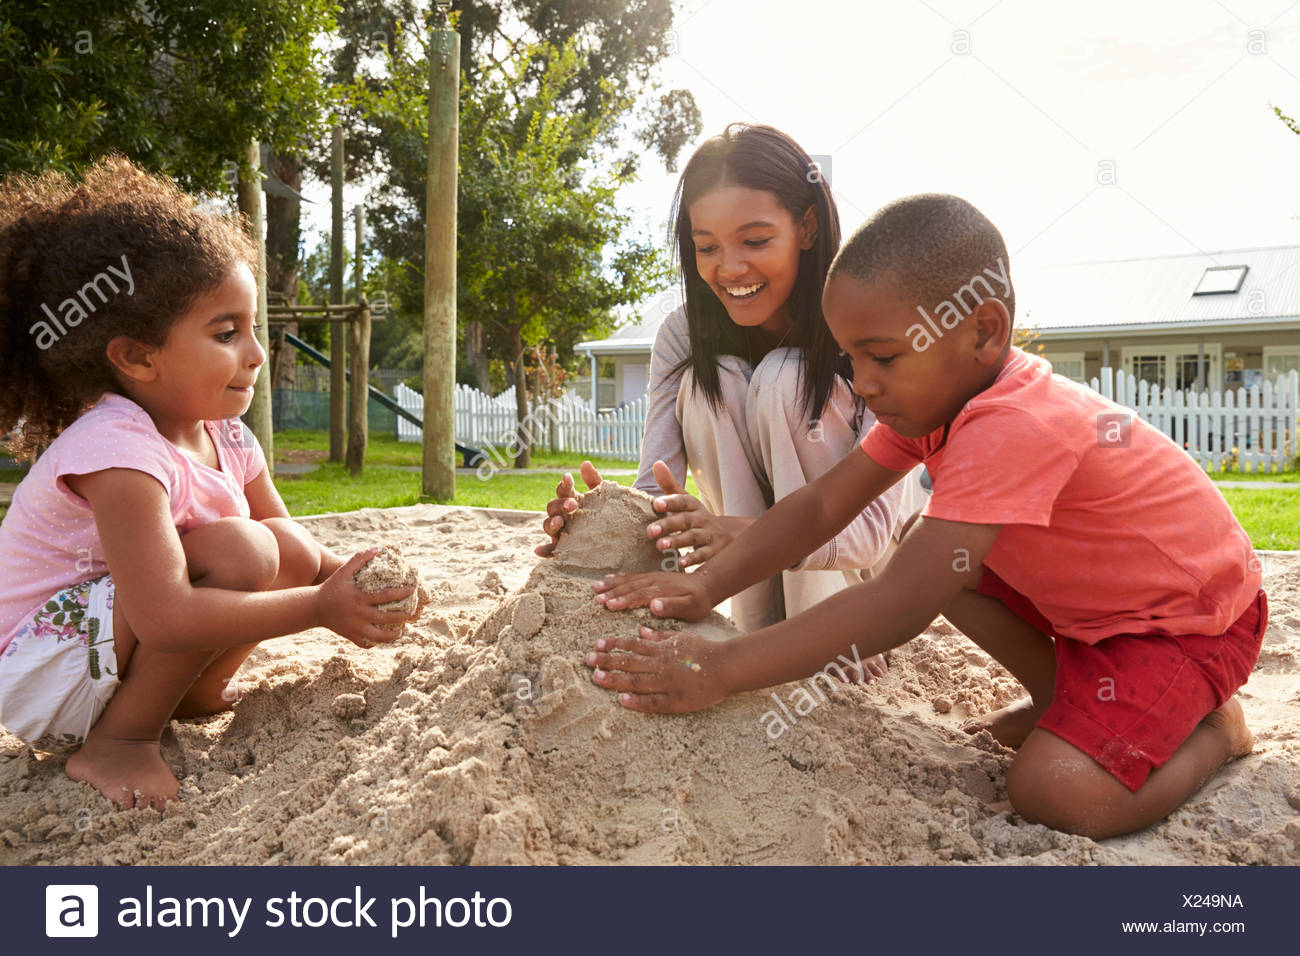 Teacher At Montessori School Playing With Children In Sand Pit - Stock Image